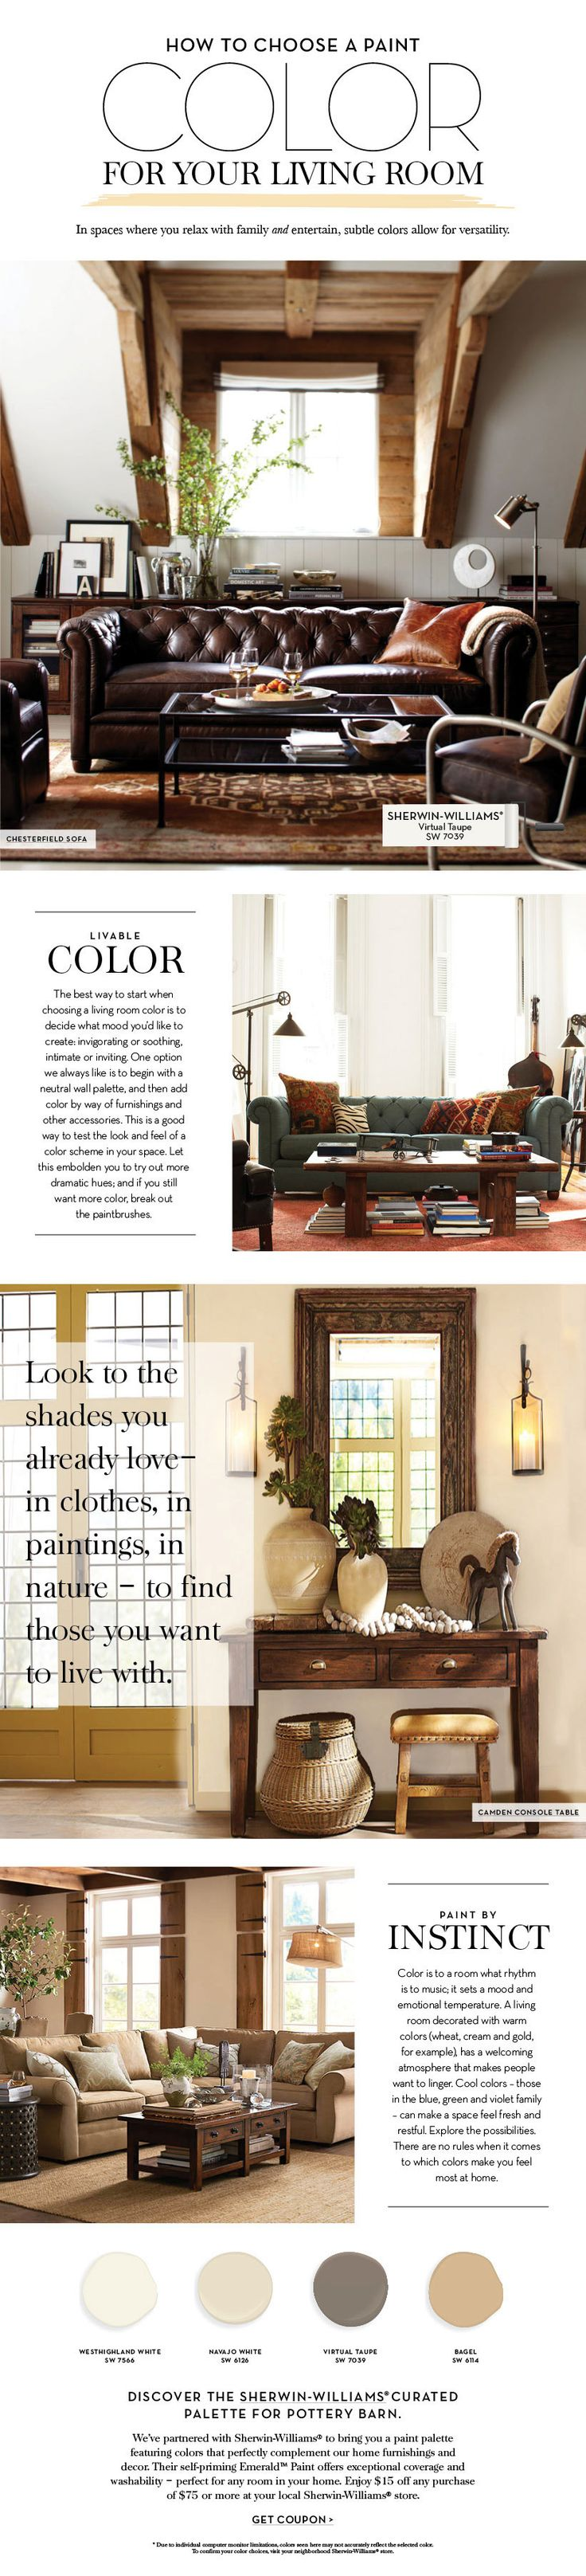 Ombre technique supplies and tips from sherwin williams - Choose A Paint Color For Your Living Room Pottery Barn